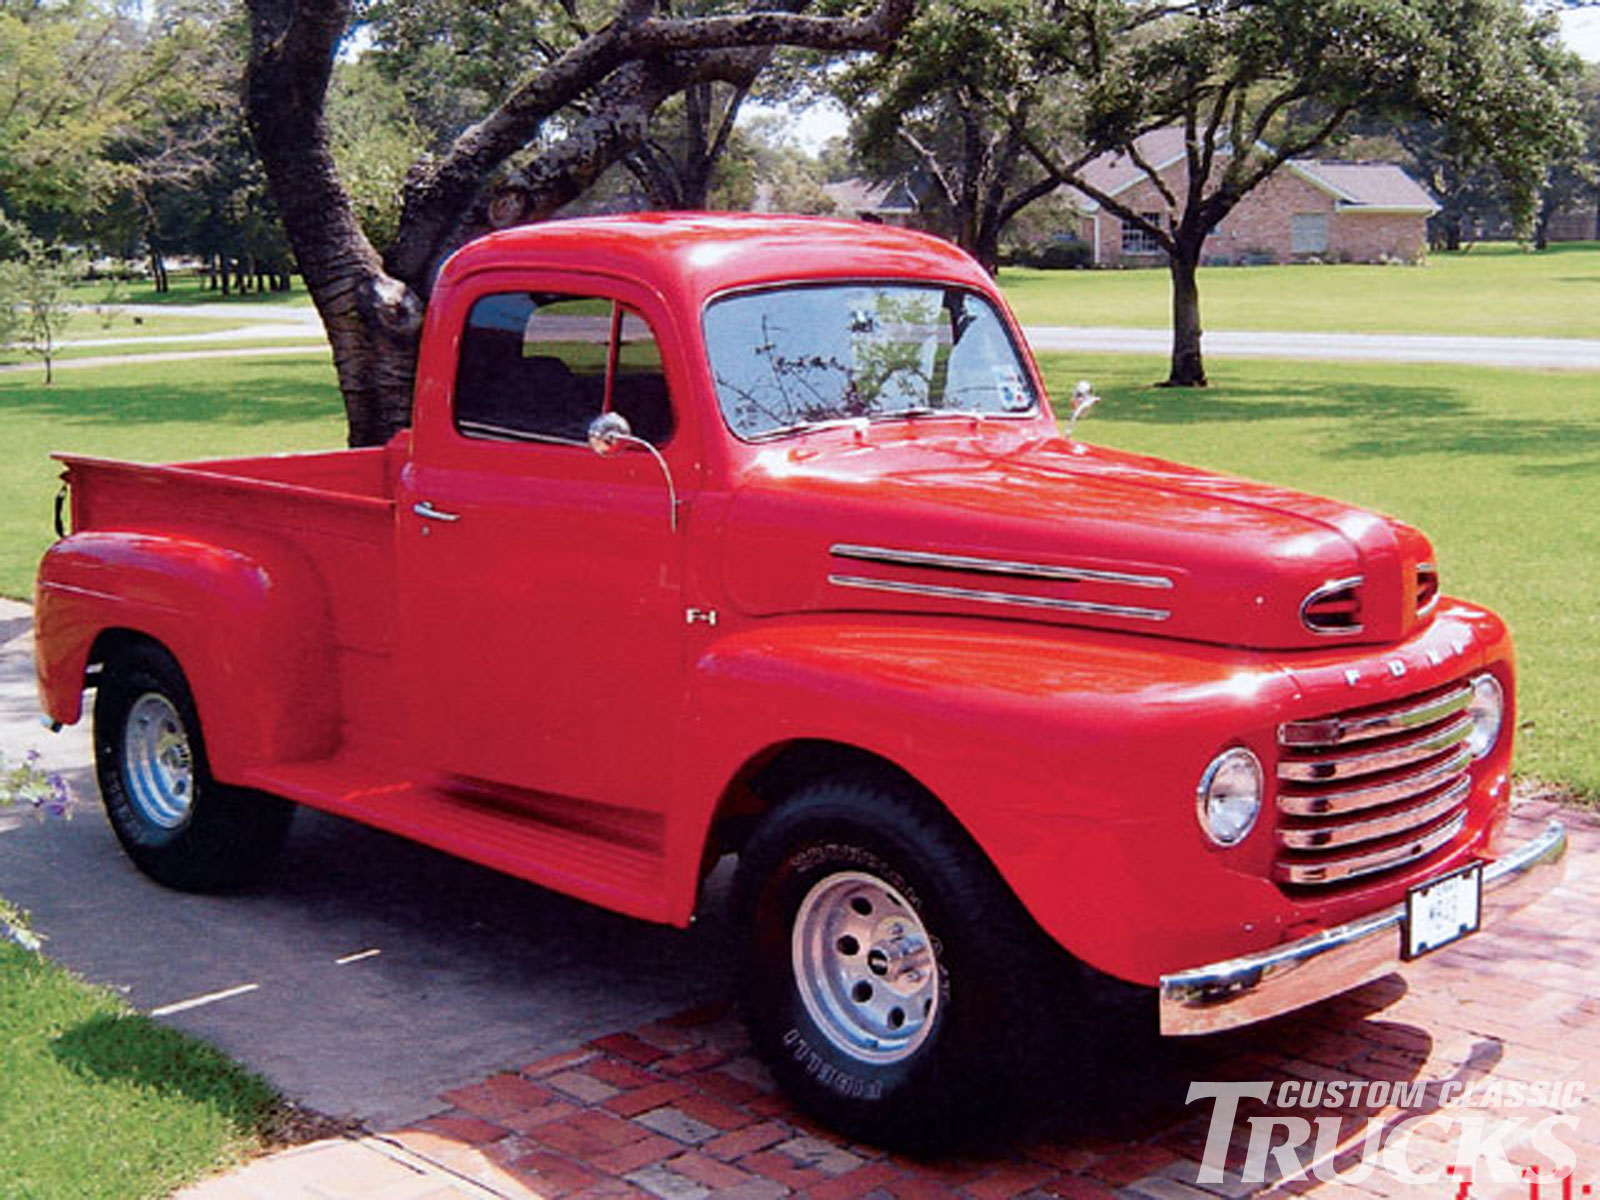 0502cct 01 z custom classic trucks readers rides 1948 ford?resize\\\=665%2C499 90 ford tractor 5610 wiring wiring diagrams 5610 ford tractor wiring diagram at gsmportal.co